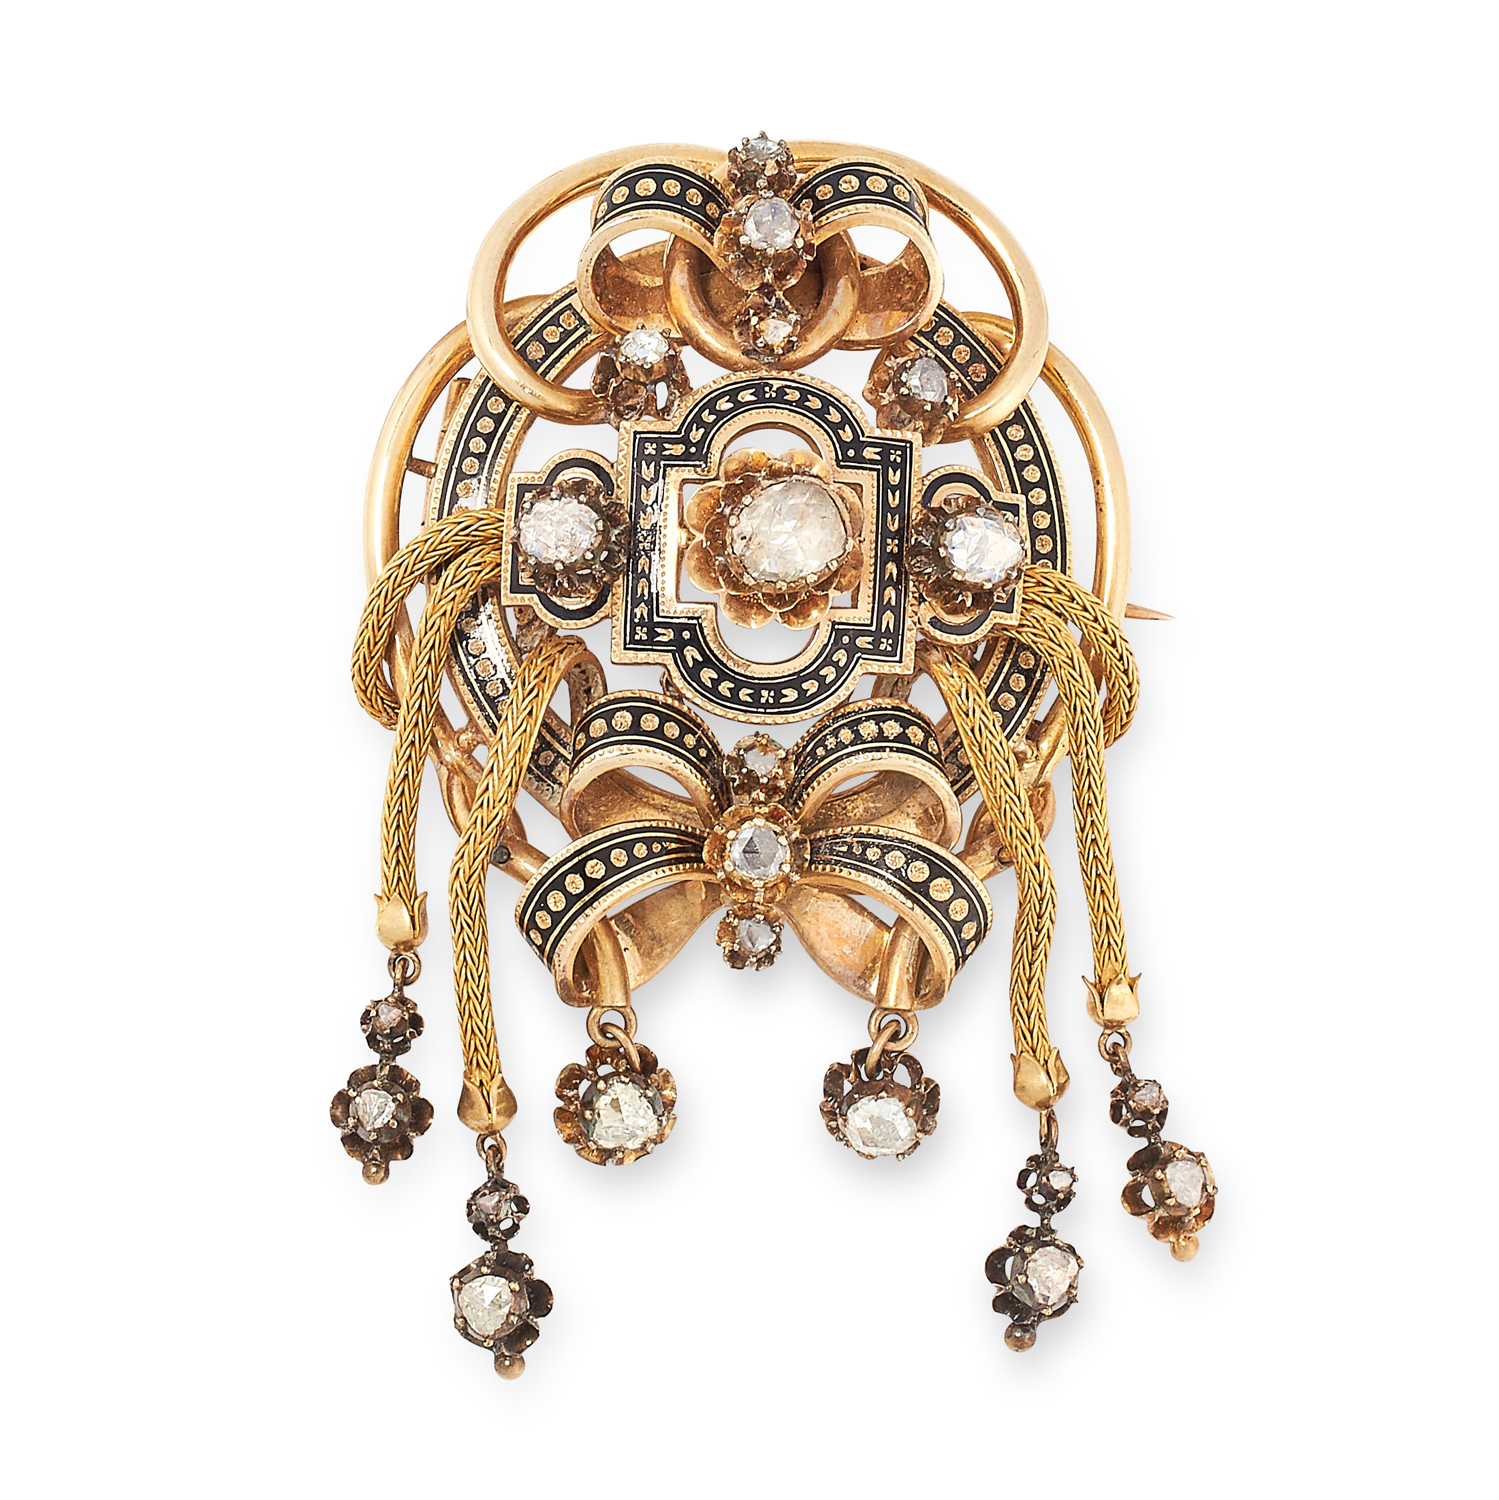 AN ANTIQUE DIAMOND AND ENAMEL TASSEL BROOCH, SPANISH 19TH CENTURY in yellow gold, set with a trio of